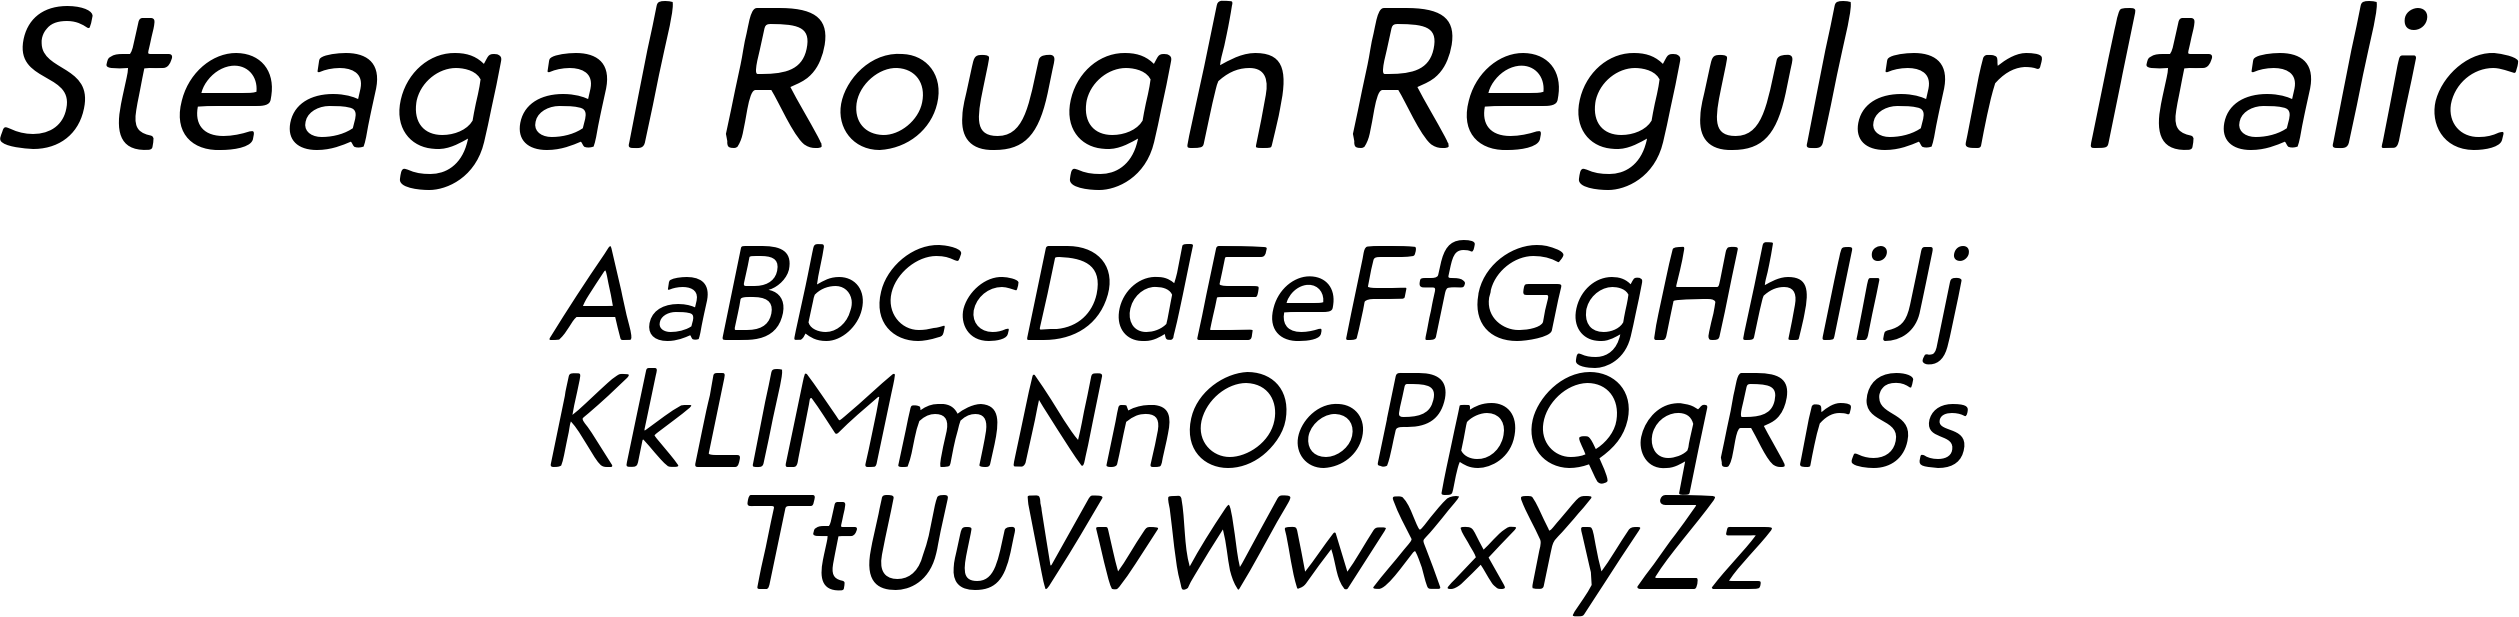 Steagal Rough Regular Italic